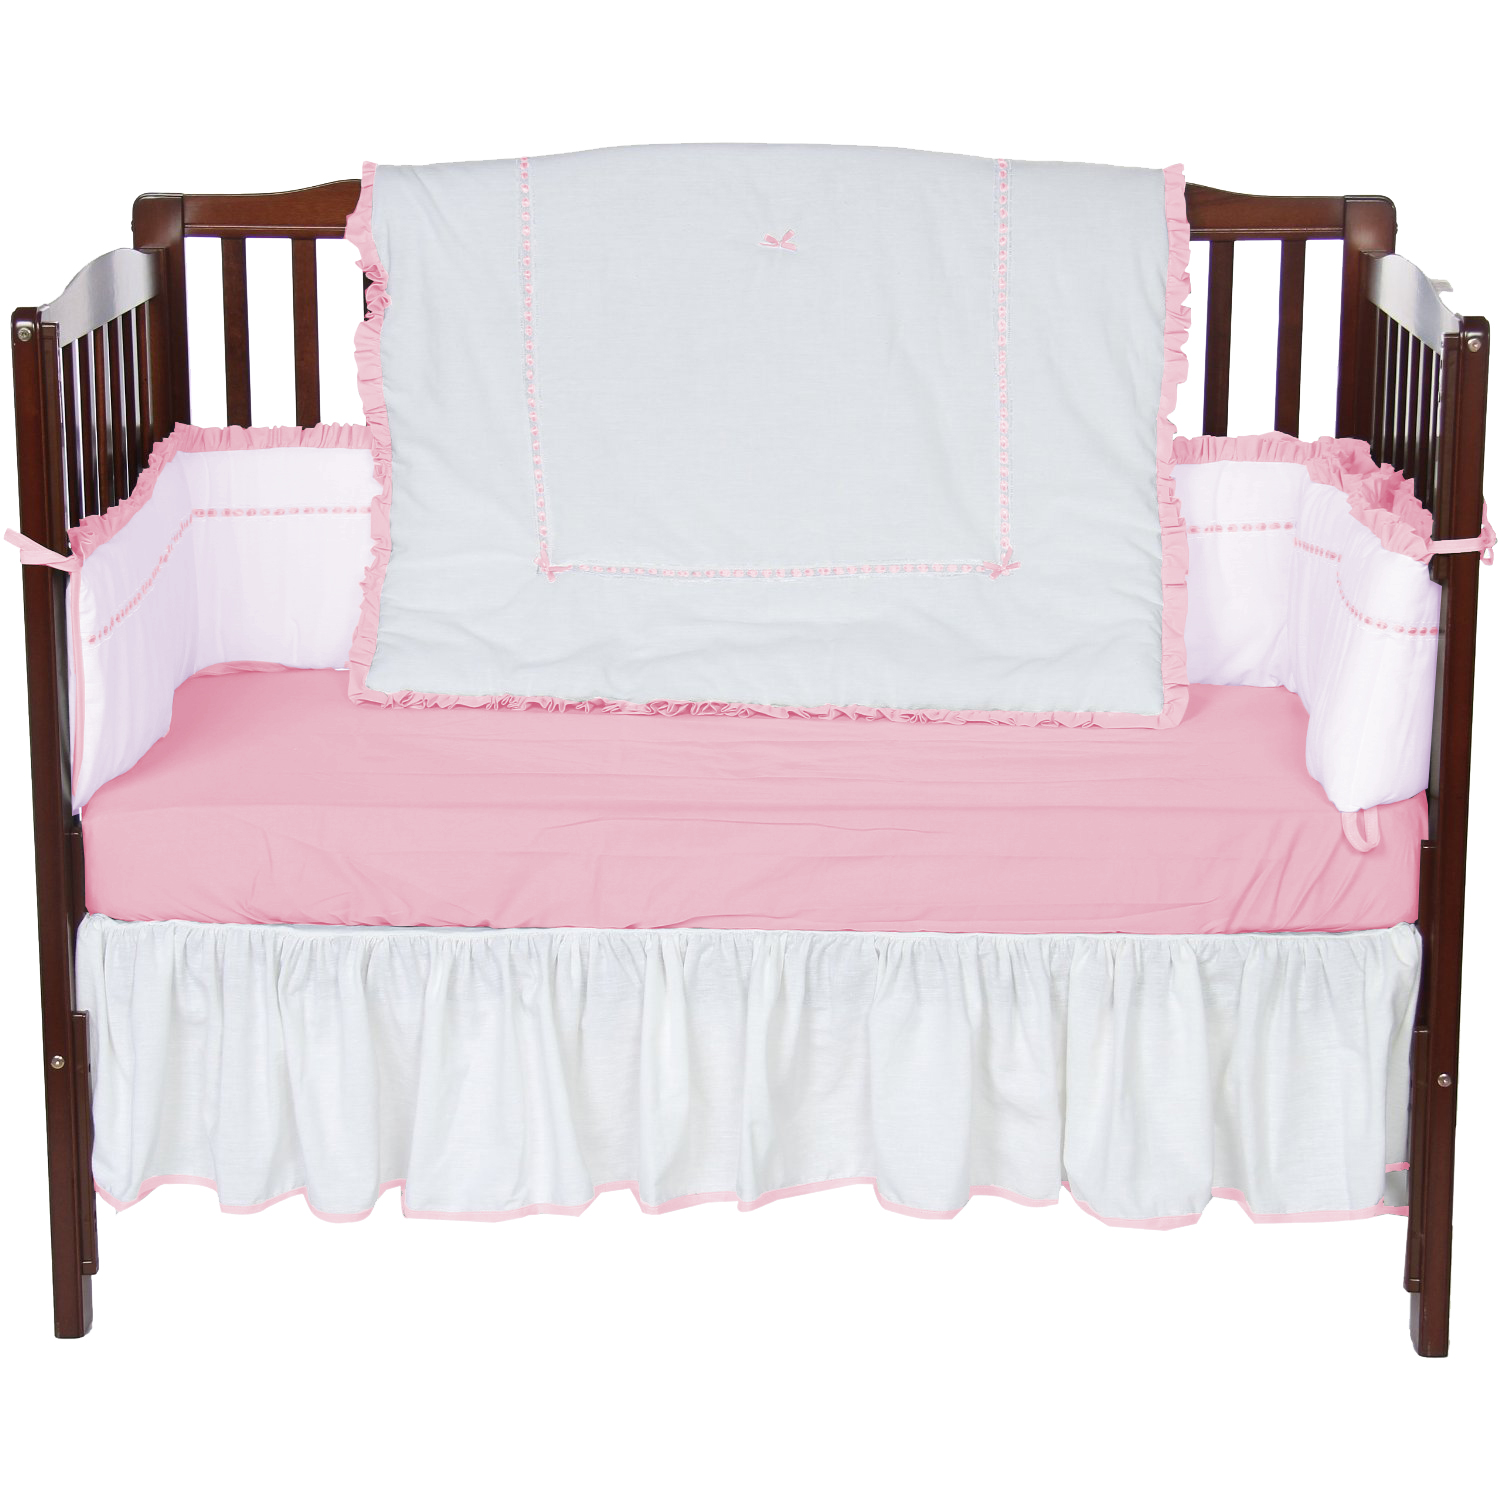 Baby Doll Bedding Unique 4 Piece Crib Bedding Set in Pink by Baby Doll Bedding